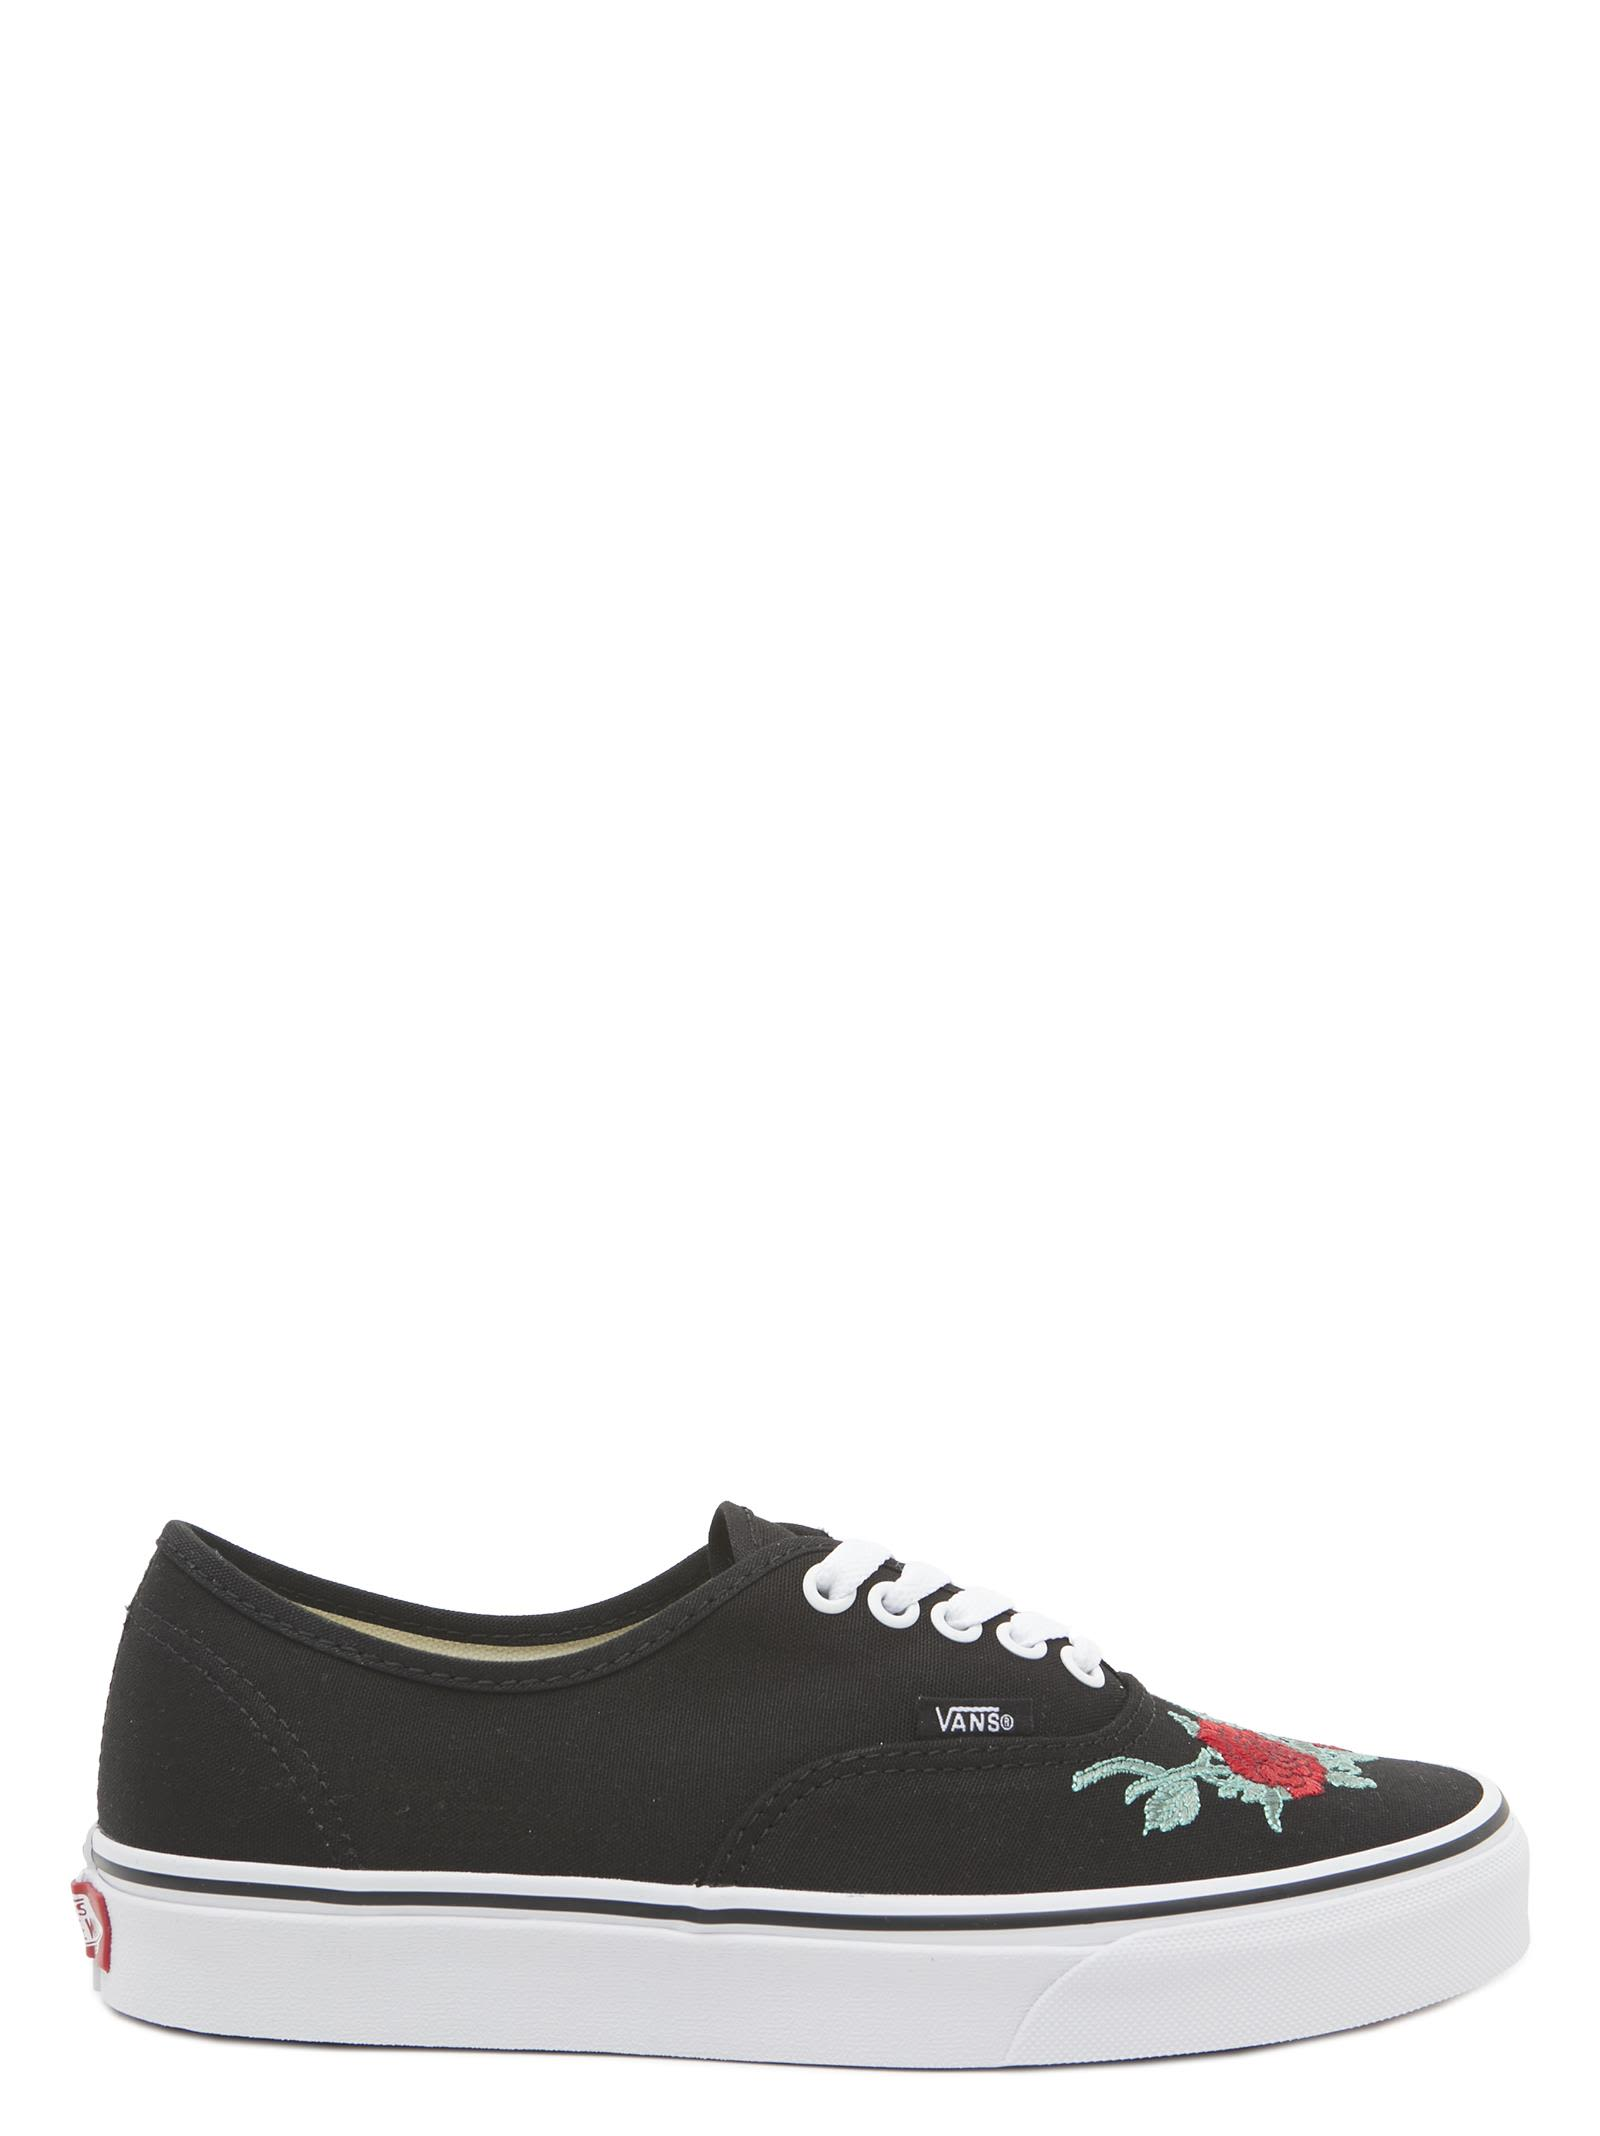 Vans Authentic Embroidery Shoes